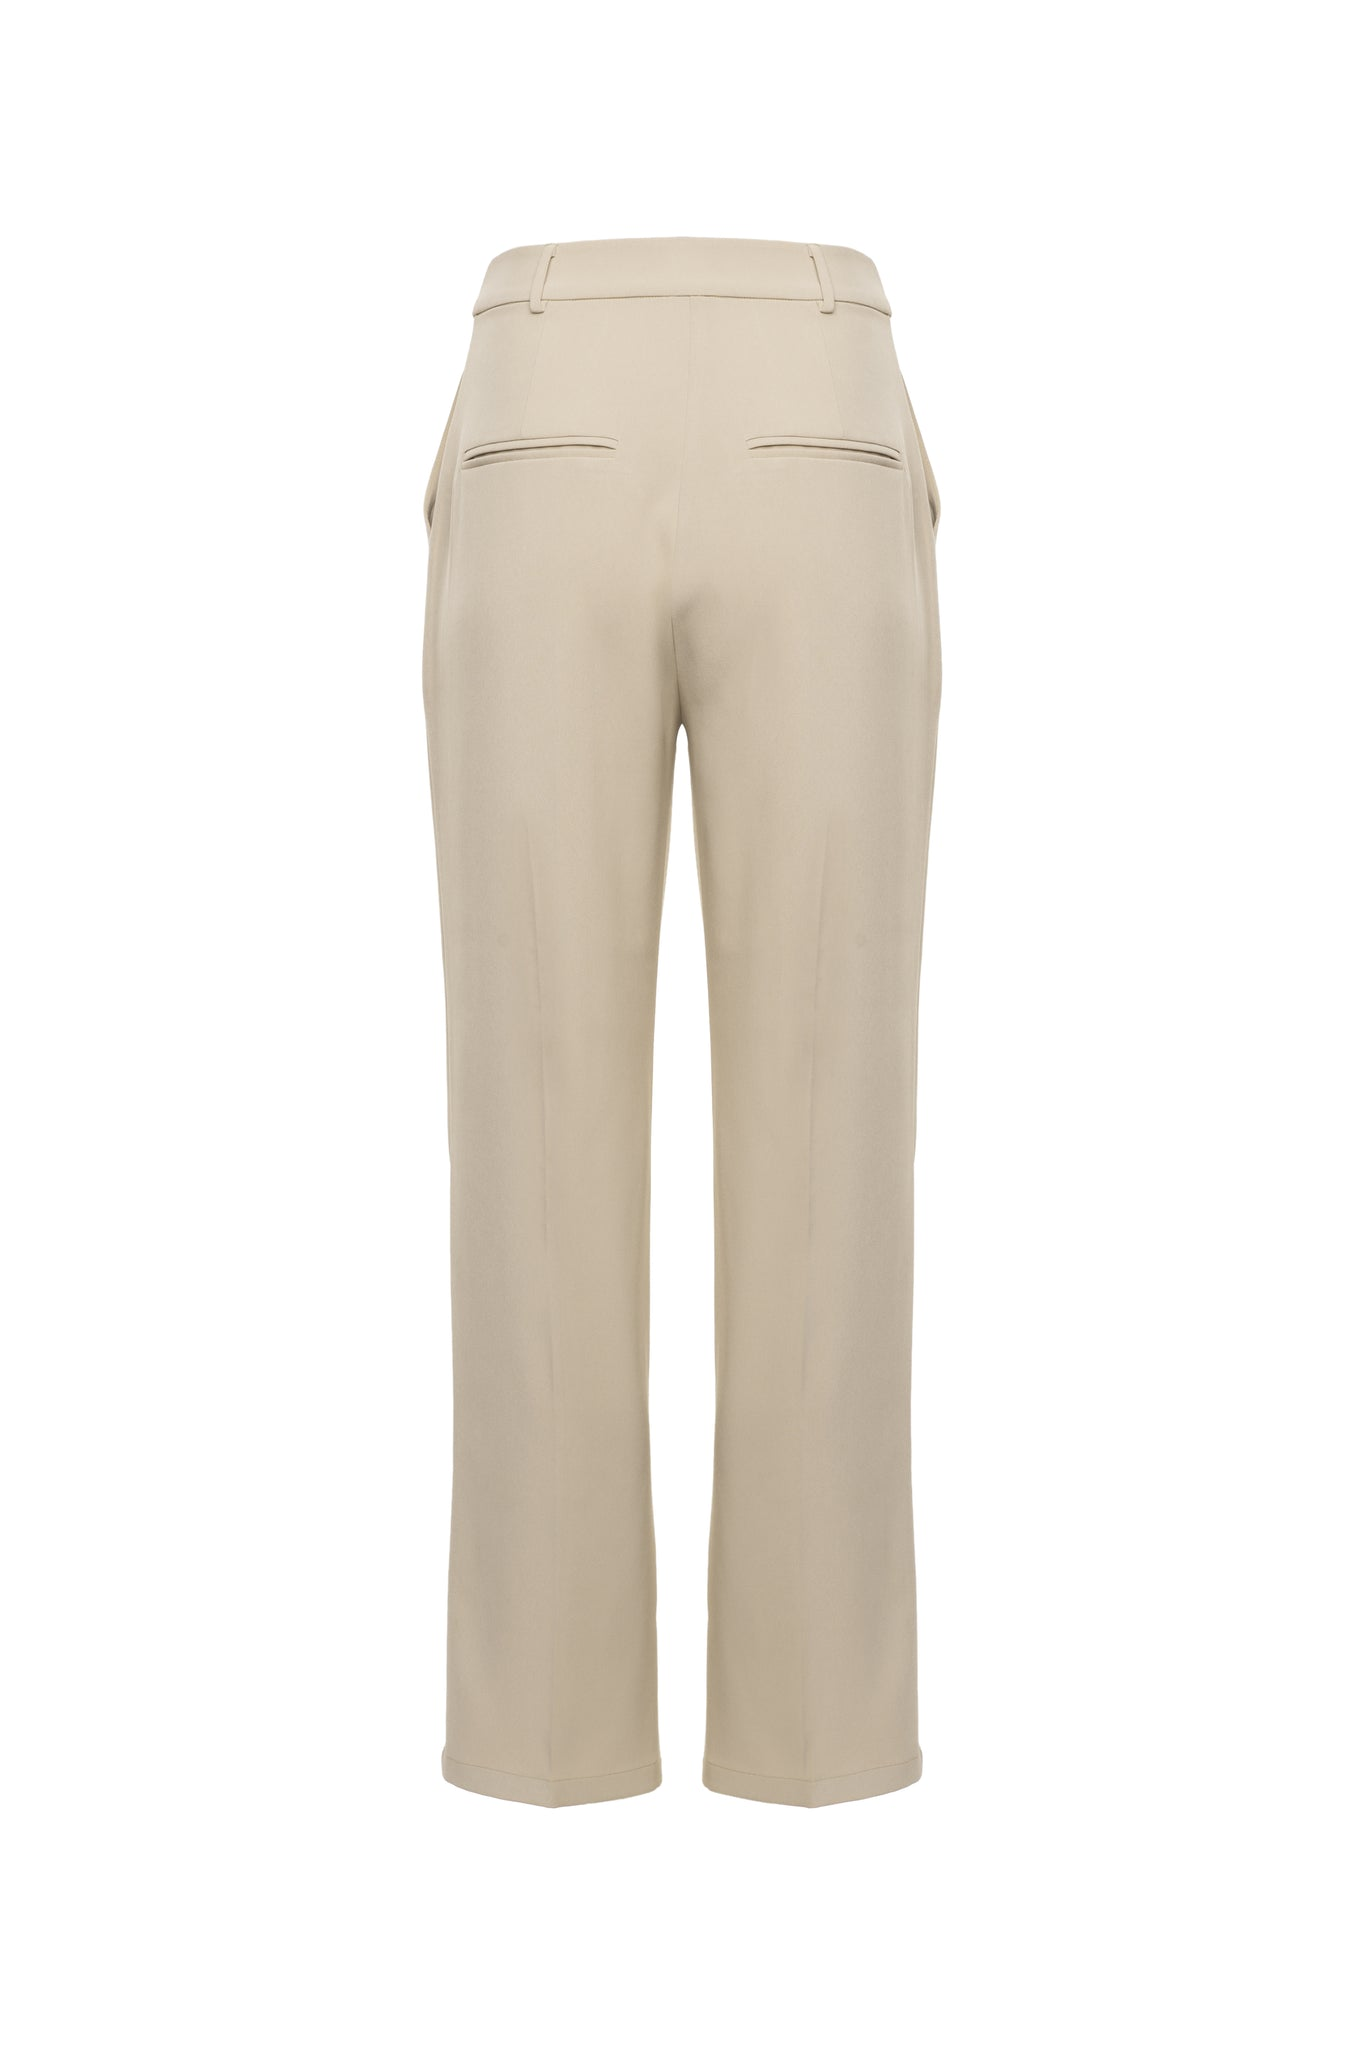 Load image into Gallery viewer, Desert Sand Tailored Pants